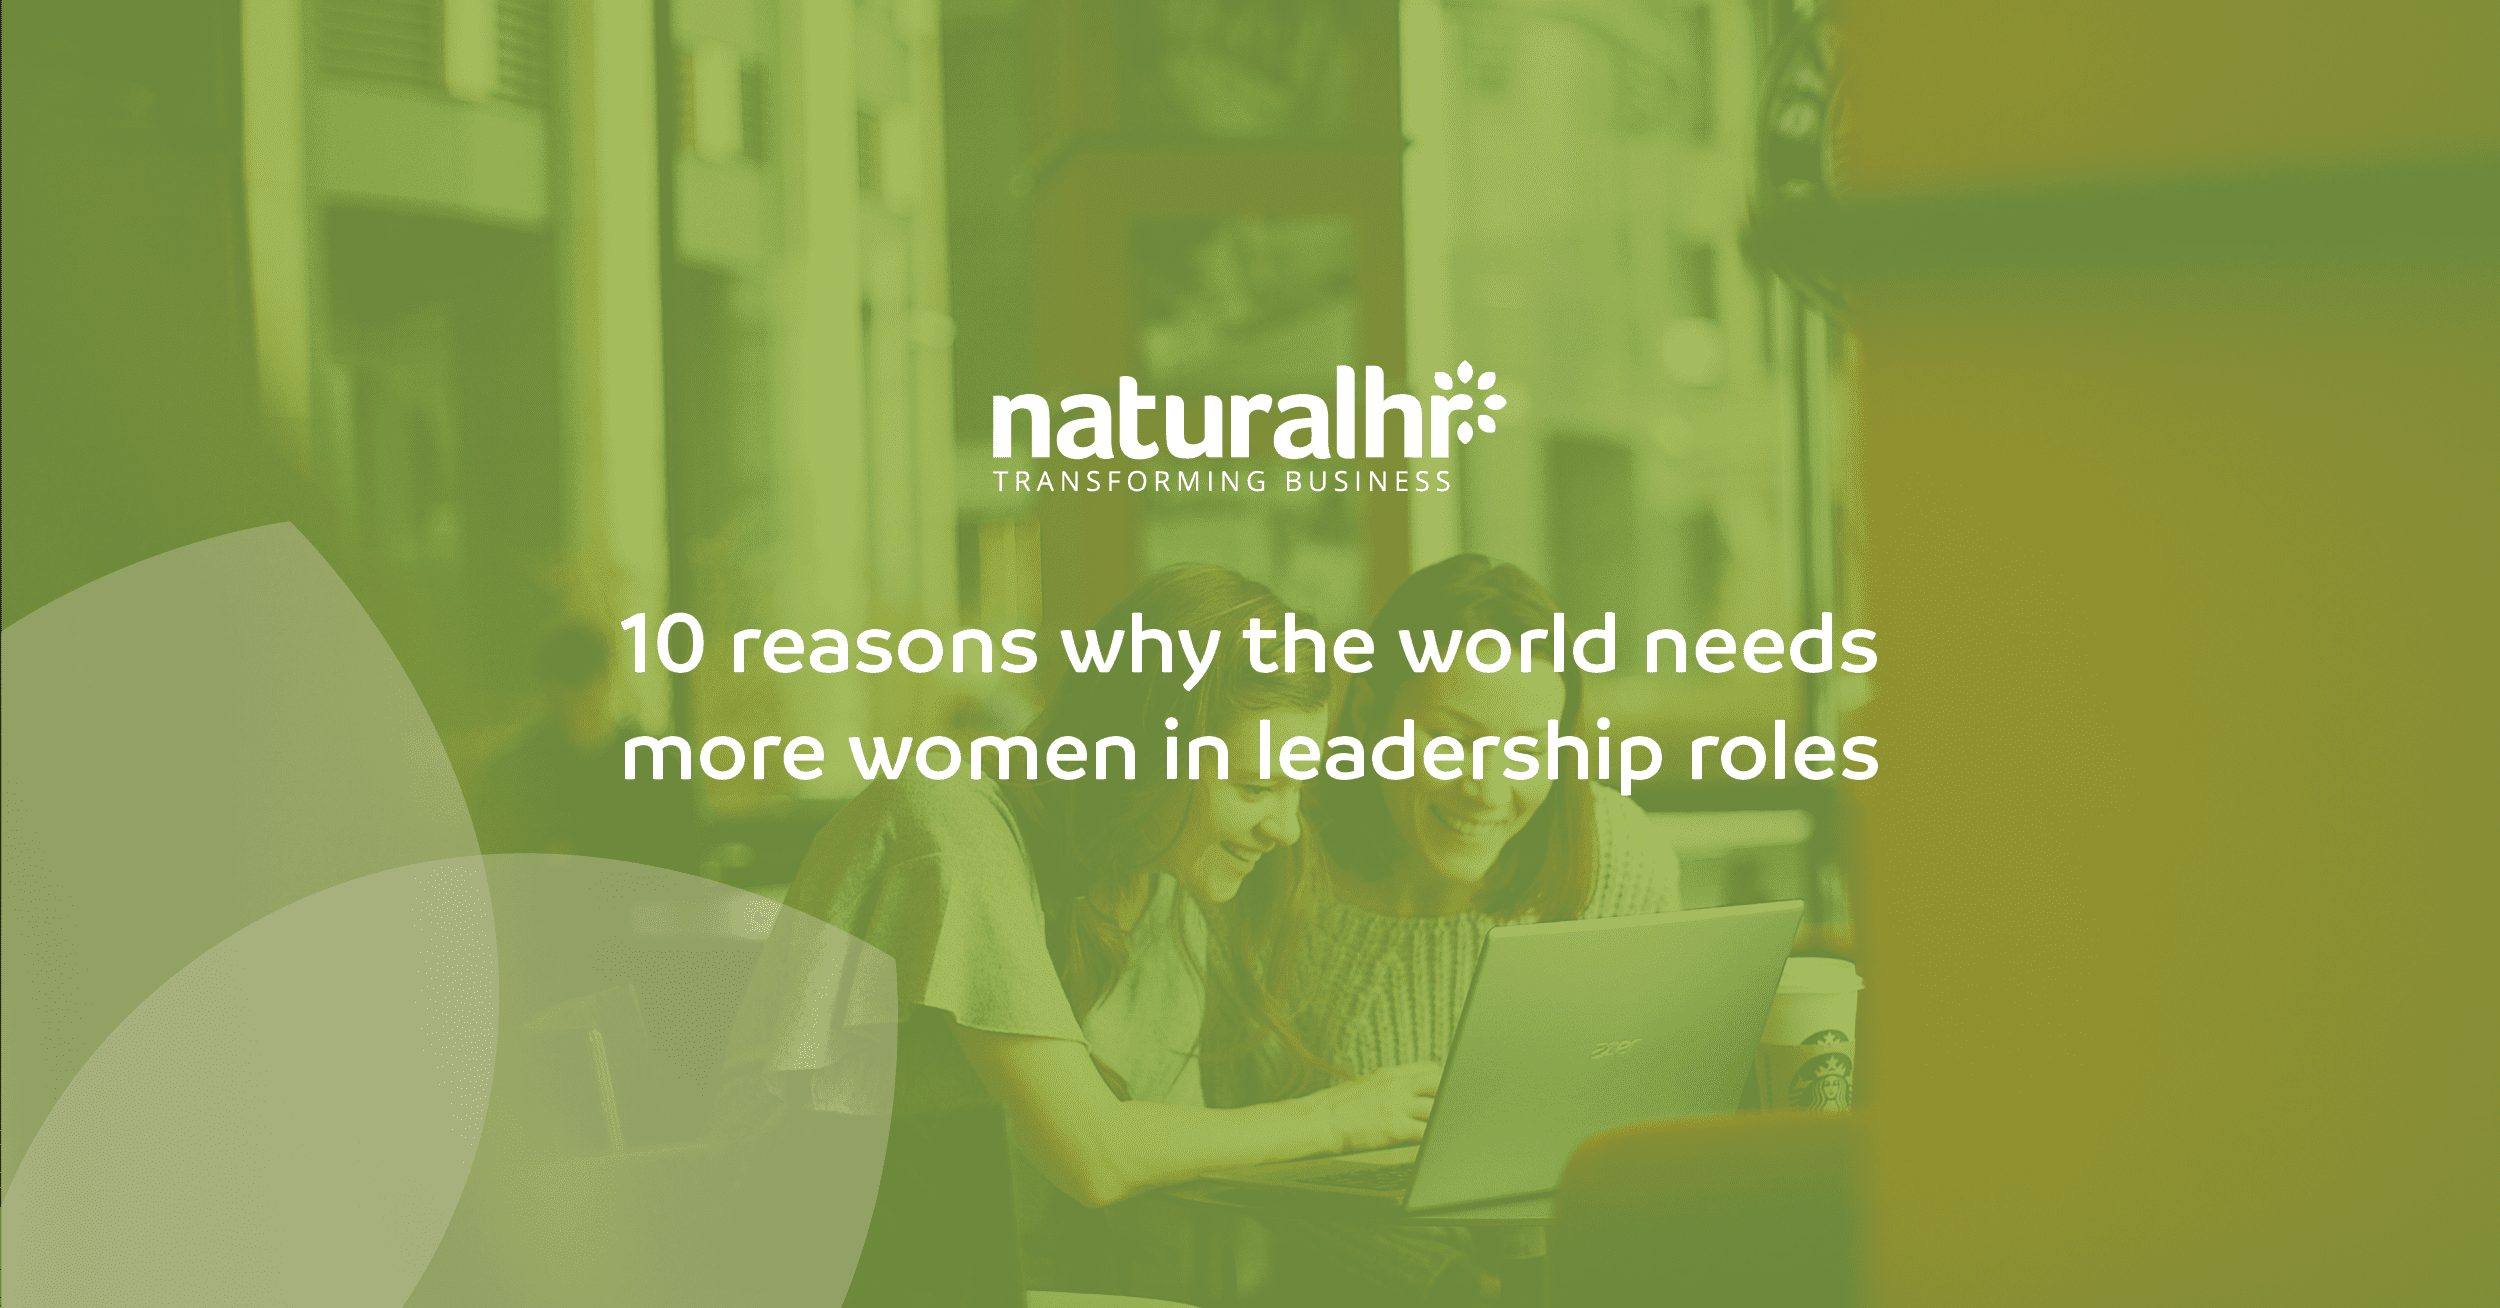 10 reasons why the world needs more women in leadership roles